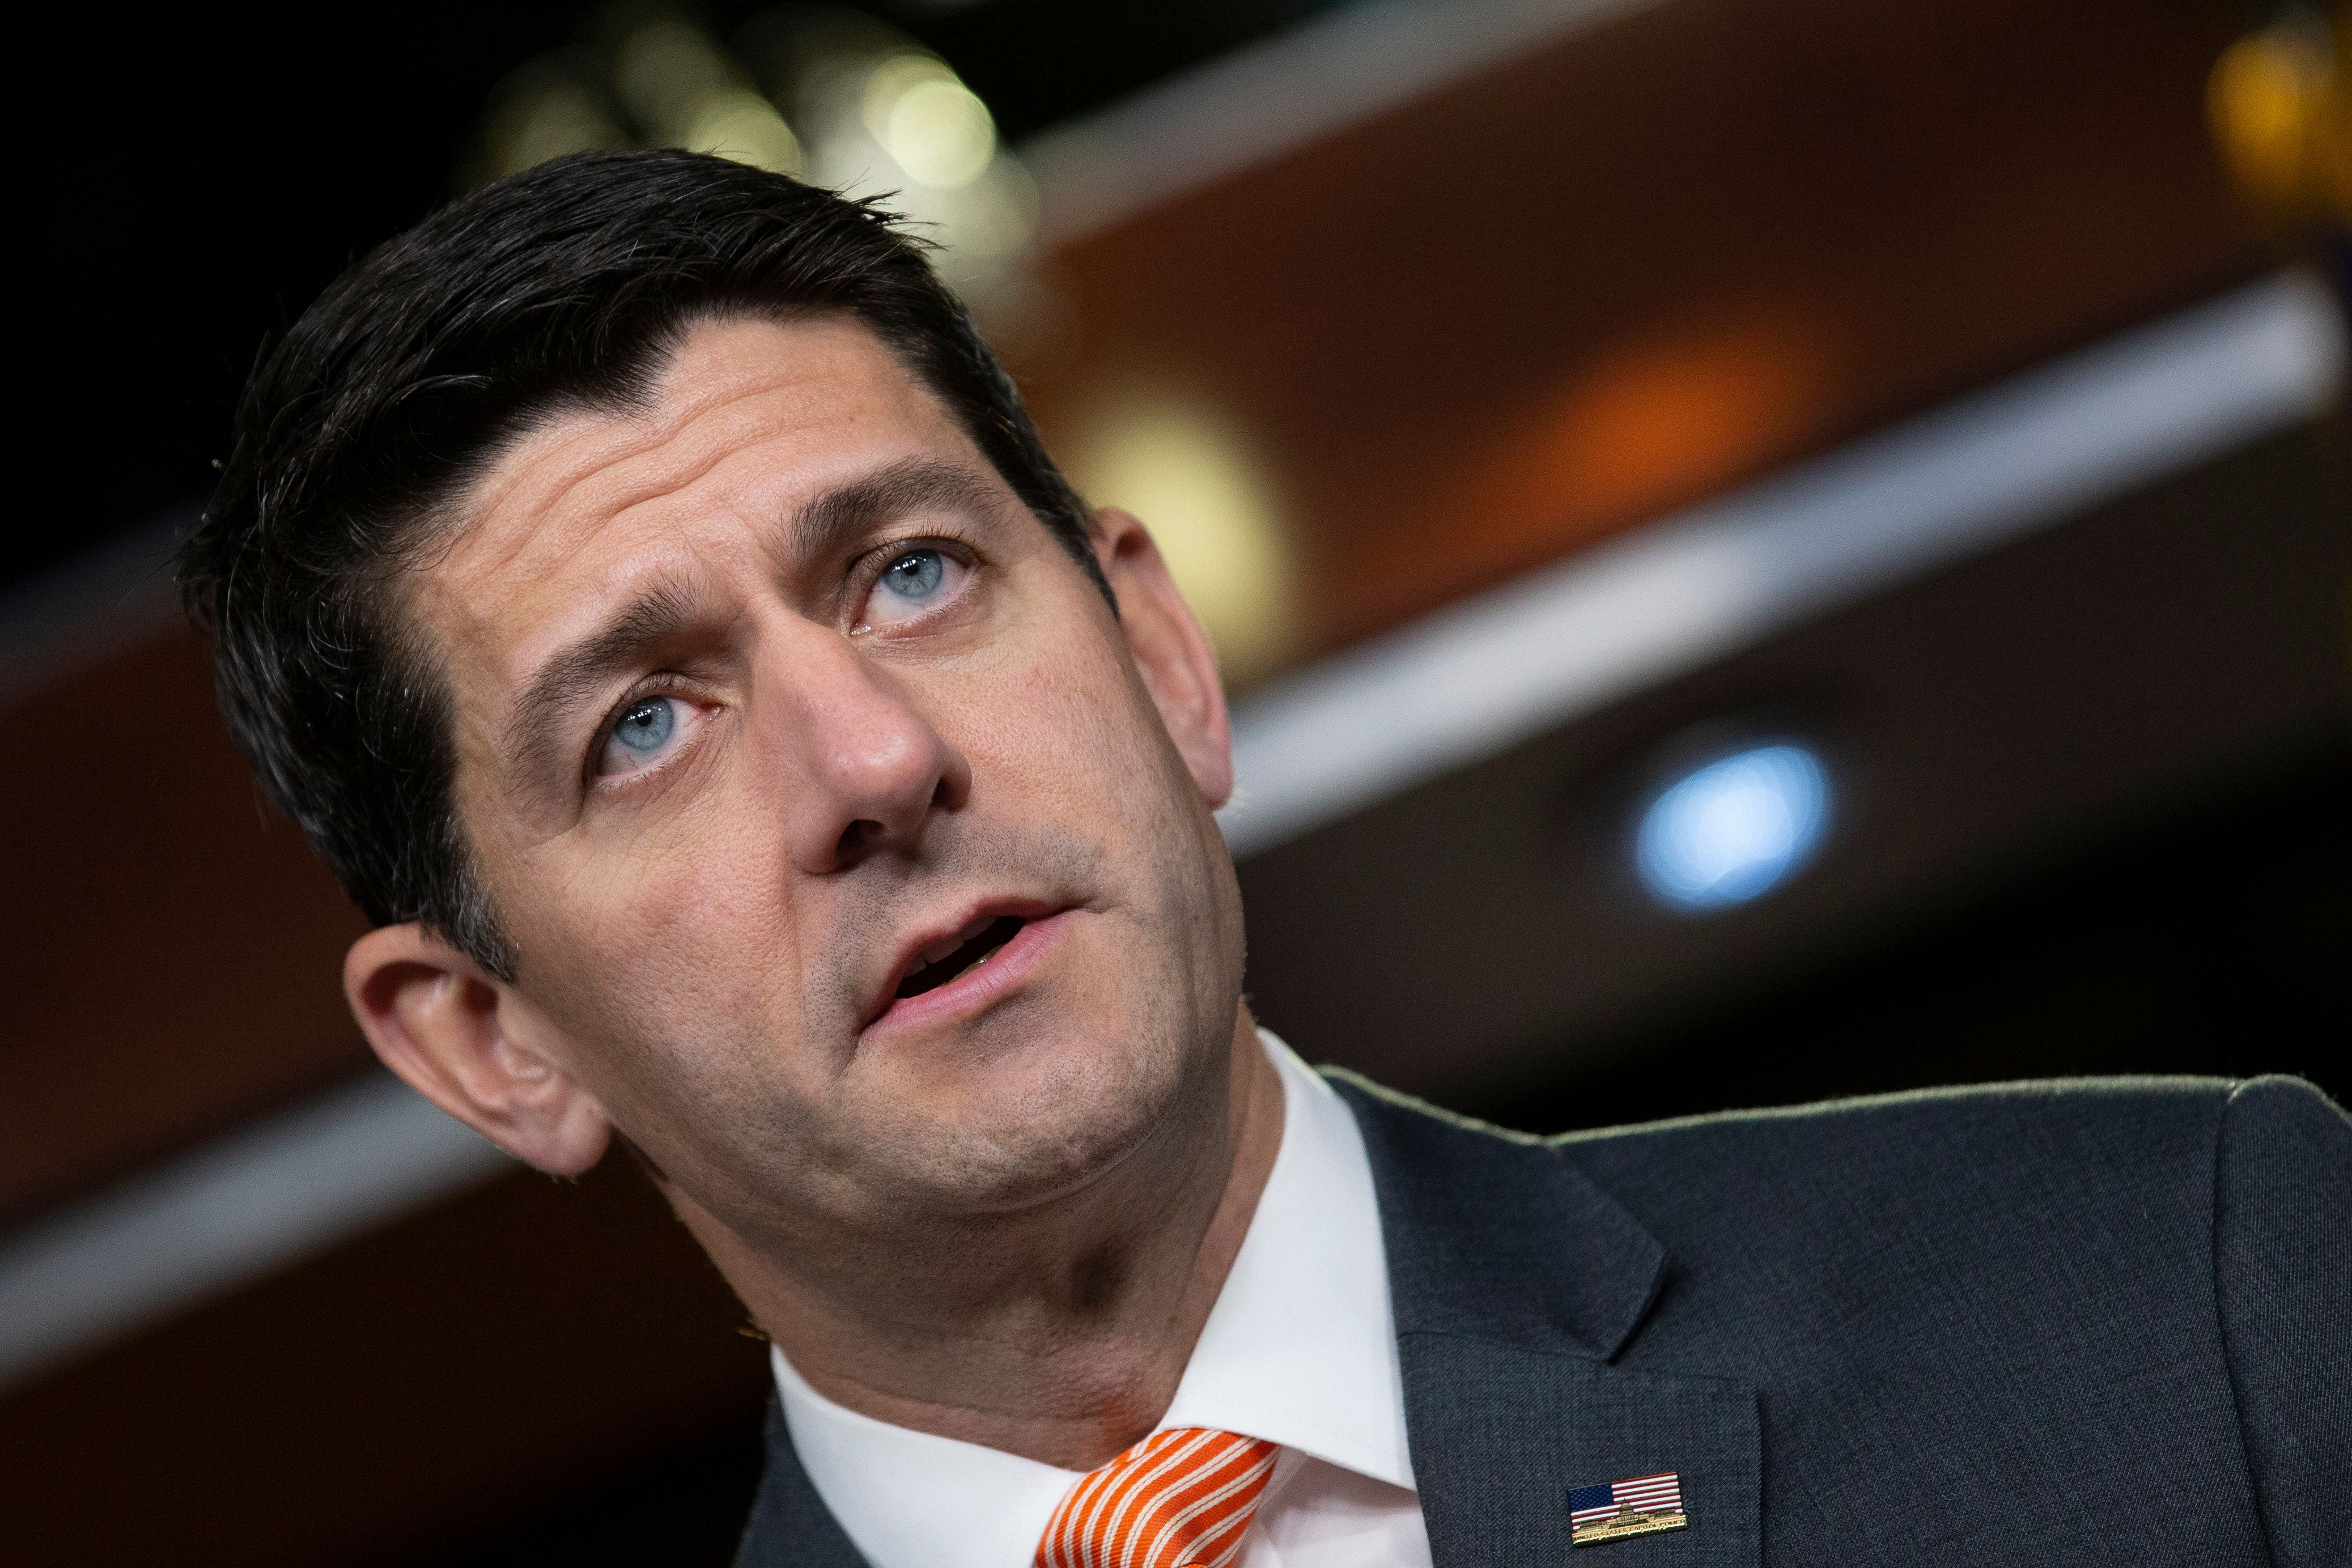 House Speaker Paul Ryan (R-Wis.) says he got an unpleasant surprise from some constituents.